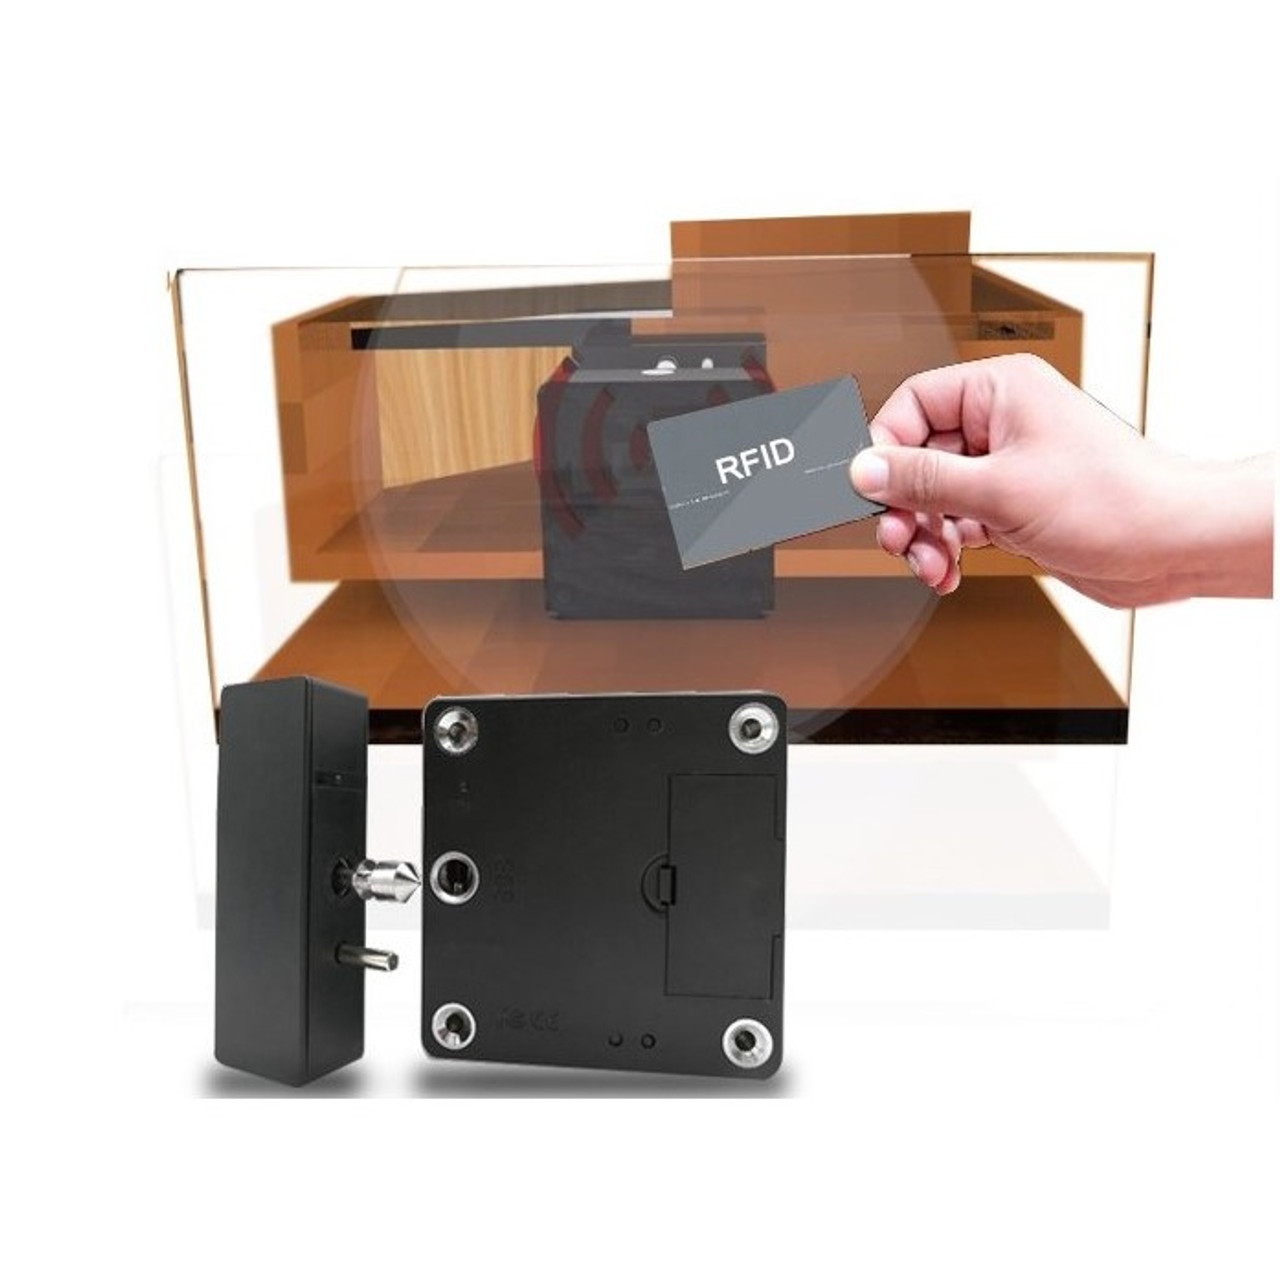 RFID Hidden Cabinet Multiple Lock System with Power Jack option